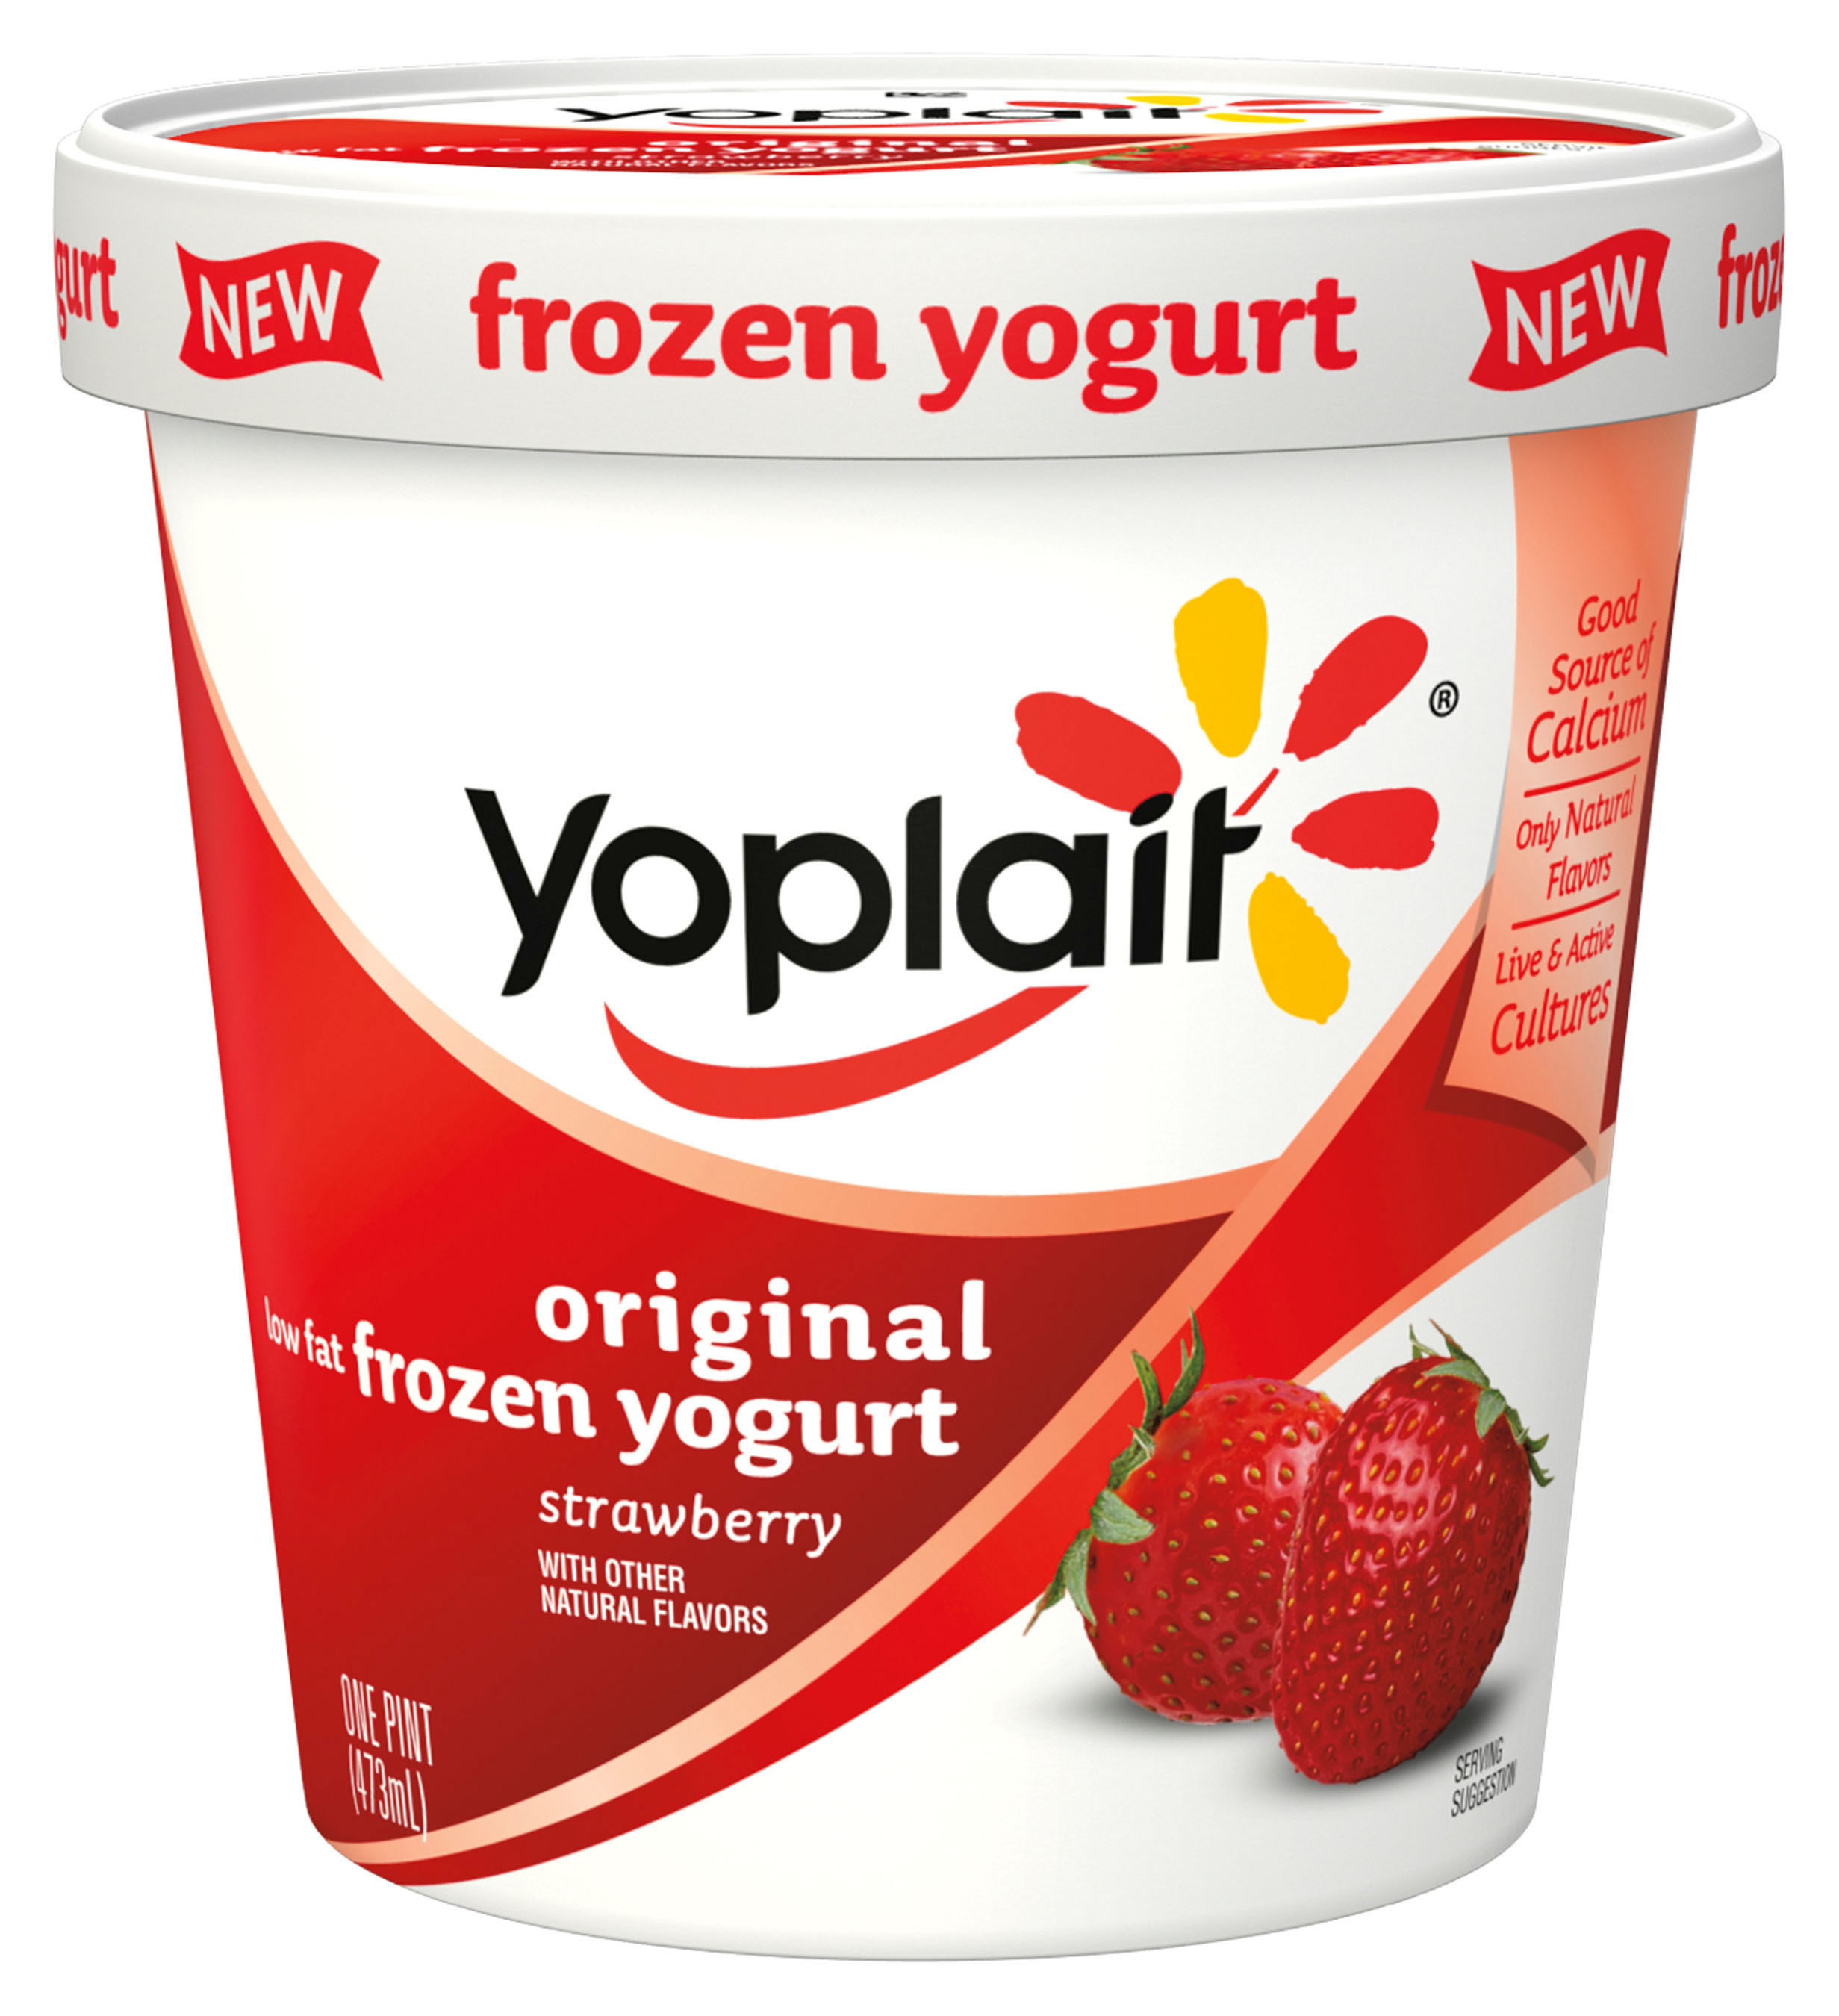 colombo frozen yogurt accounting General malls inc after acquiring colombo frozen yogurt is on the impulse  as that market accounts for 80% of gmi's revenue yet the shipping cost for those.